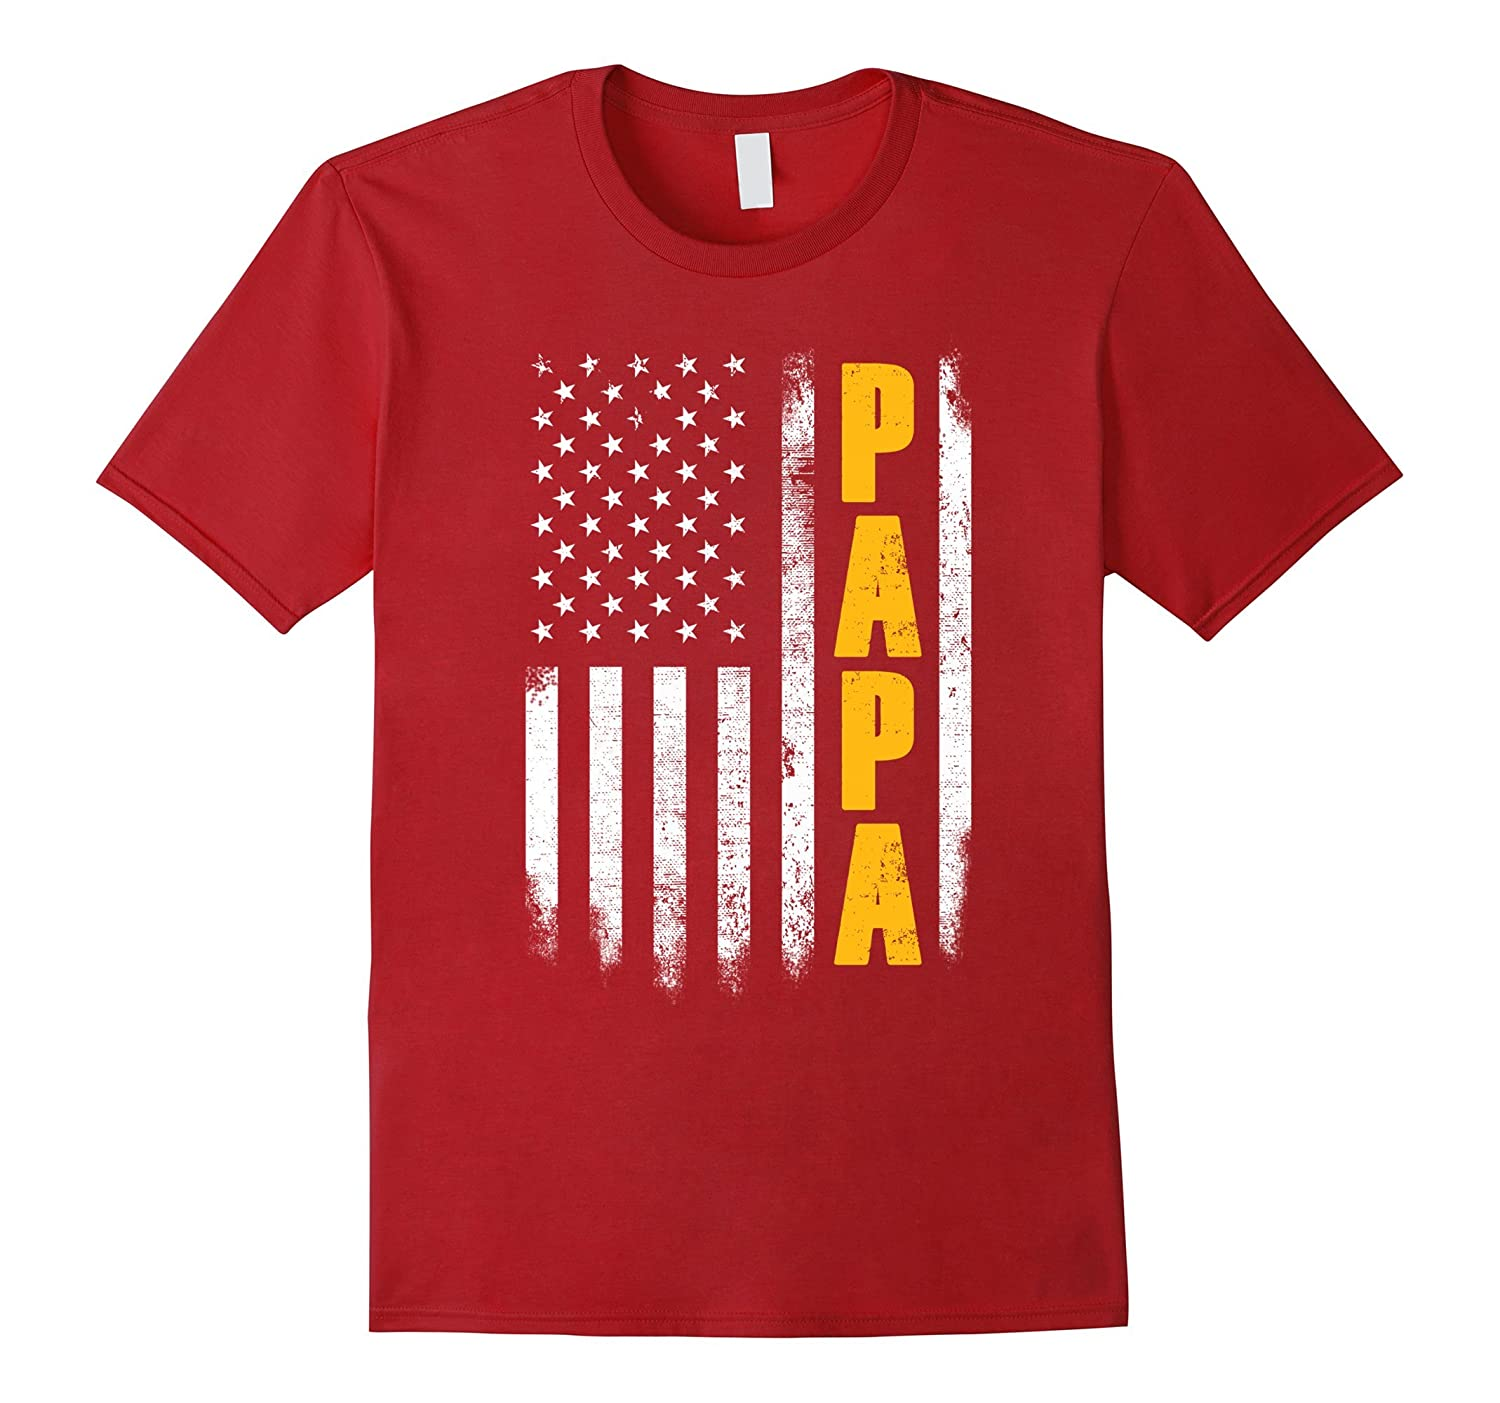 2017 Proud Papa Fathers Day Gifts Shirt From Grandchildren-PL